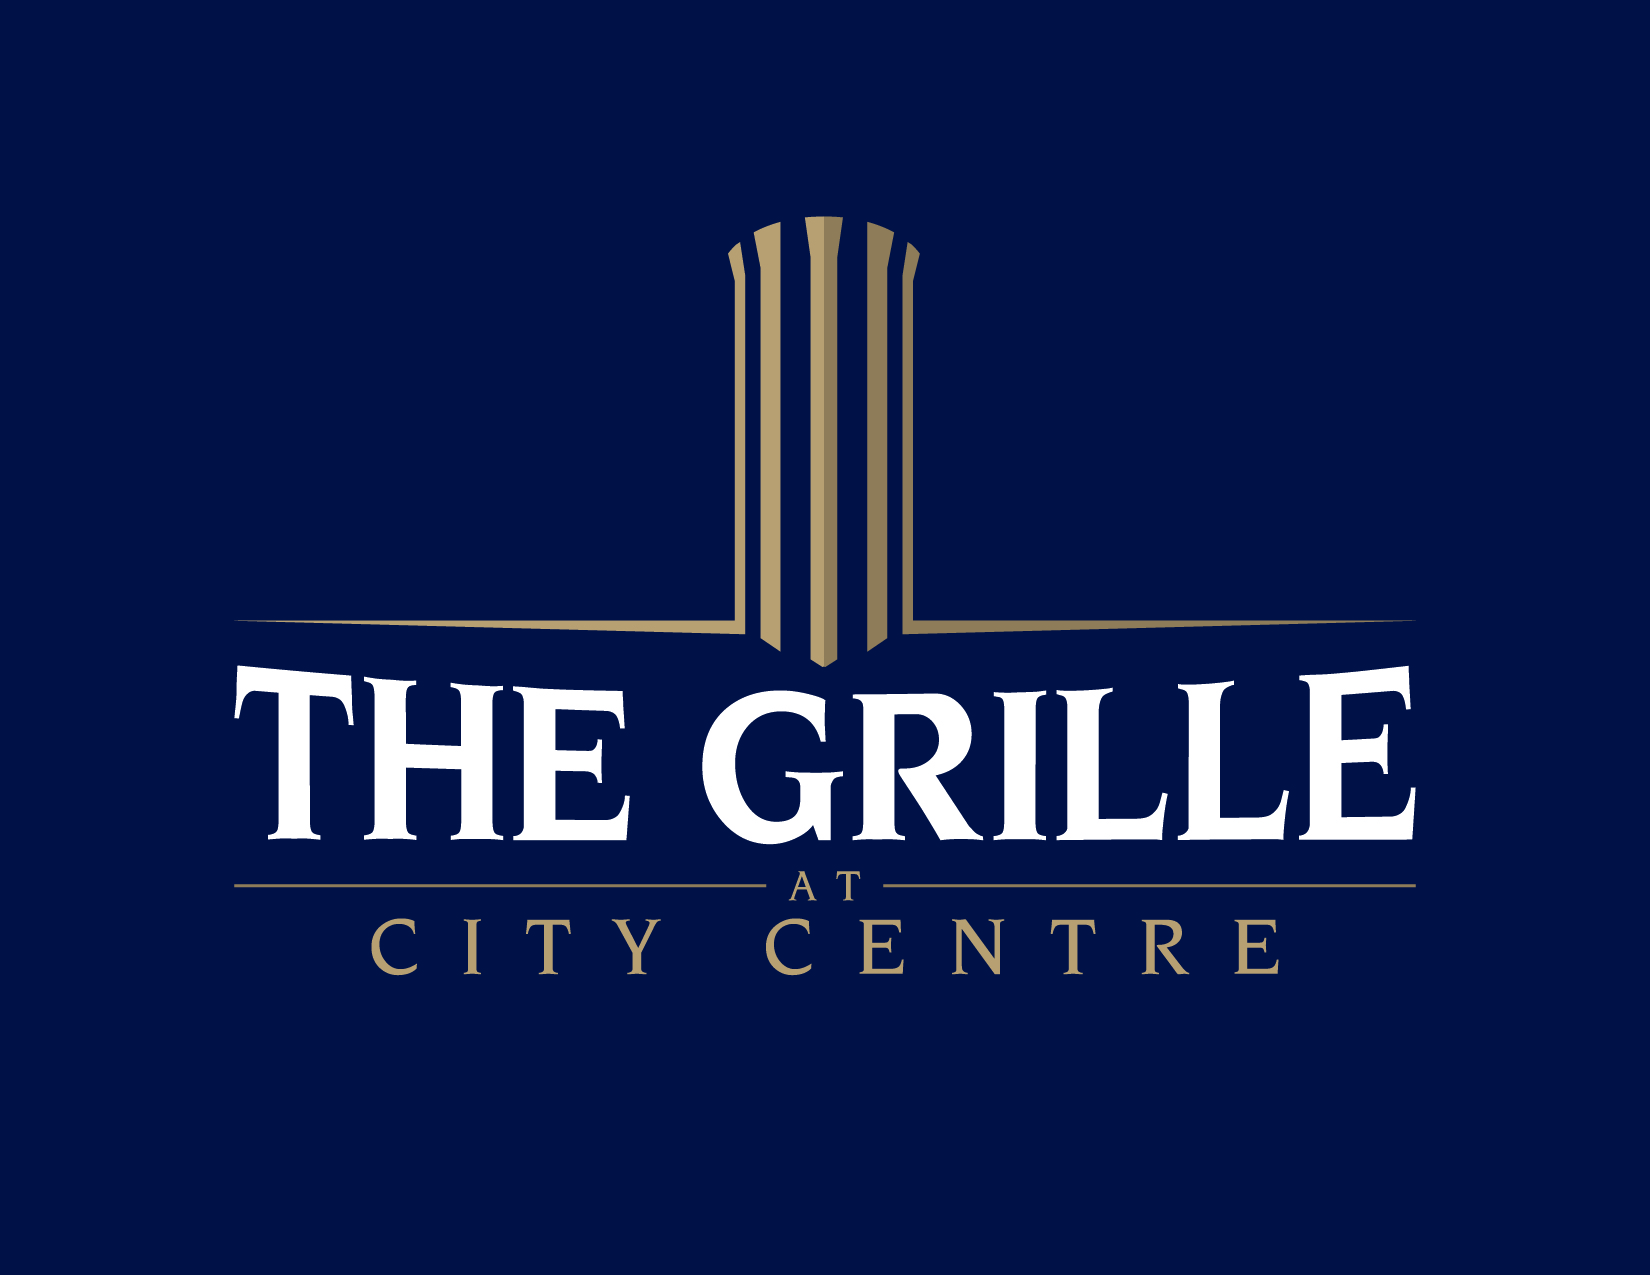 The Grille at the City Center